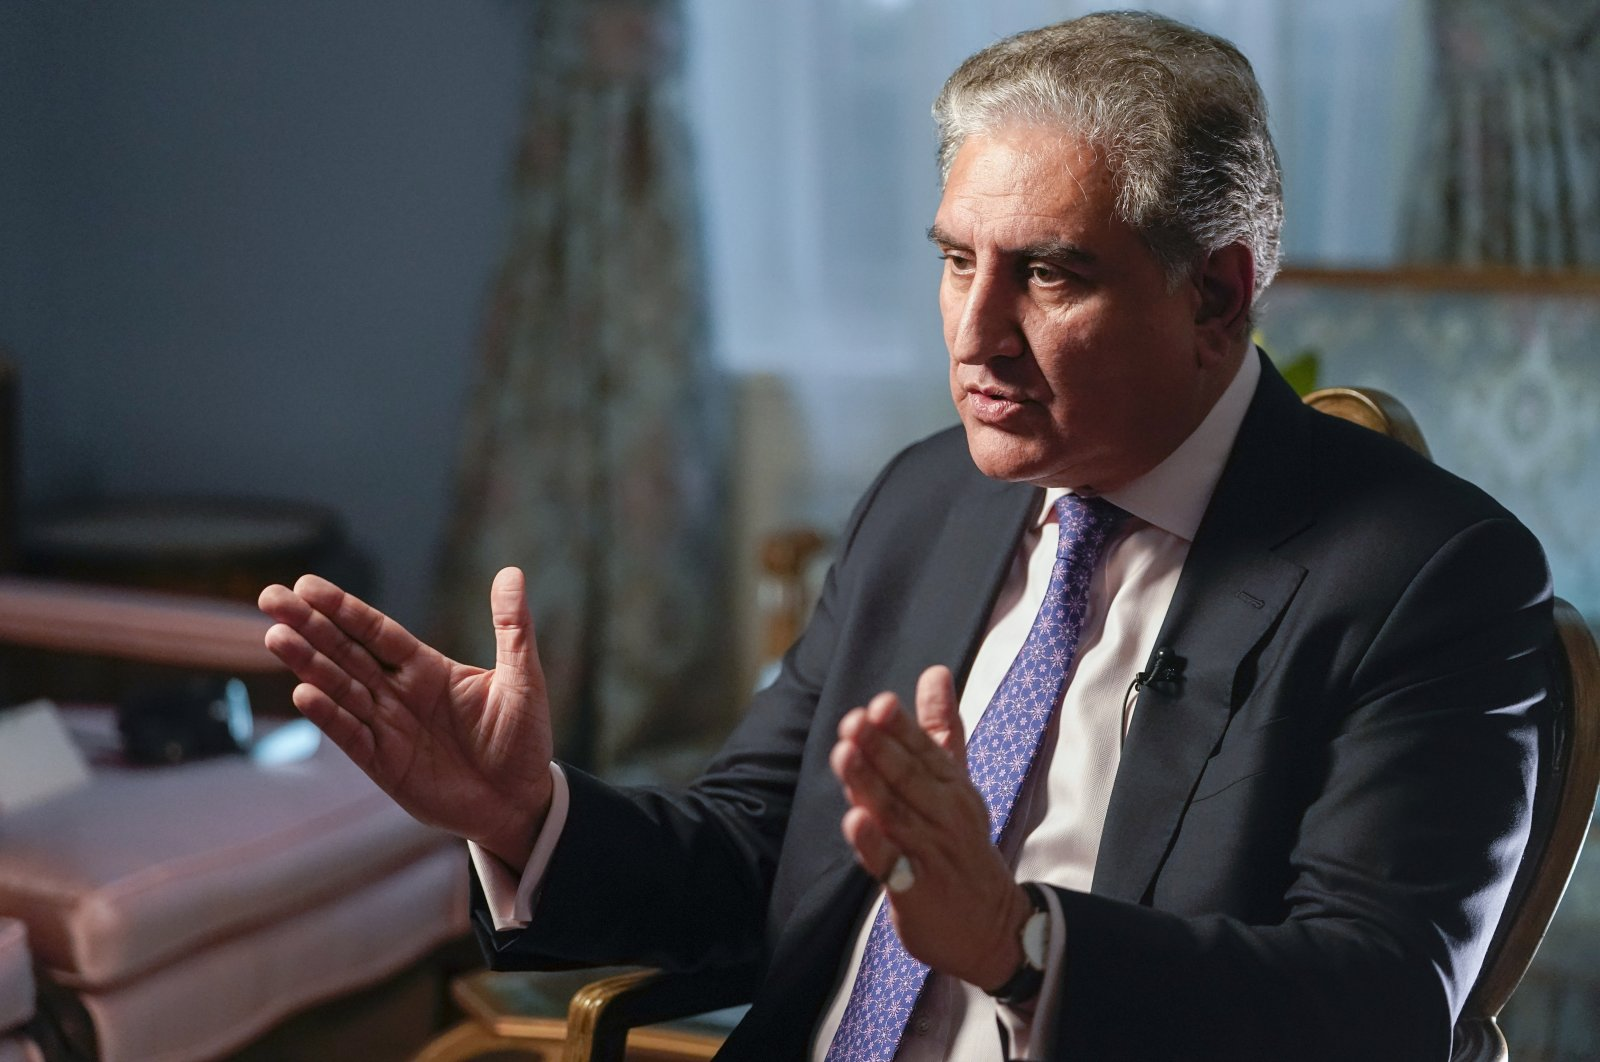 Pakistan's Foreign Minister Shah Mehmood Qureshi speaks during an interview with The Associated Press, Sept. 22, 2021, in New York, U.S. (AP Photo)